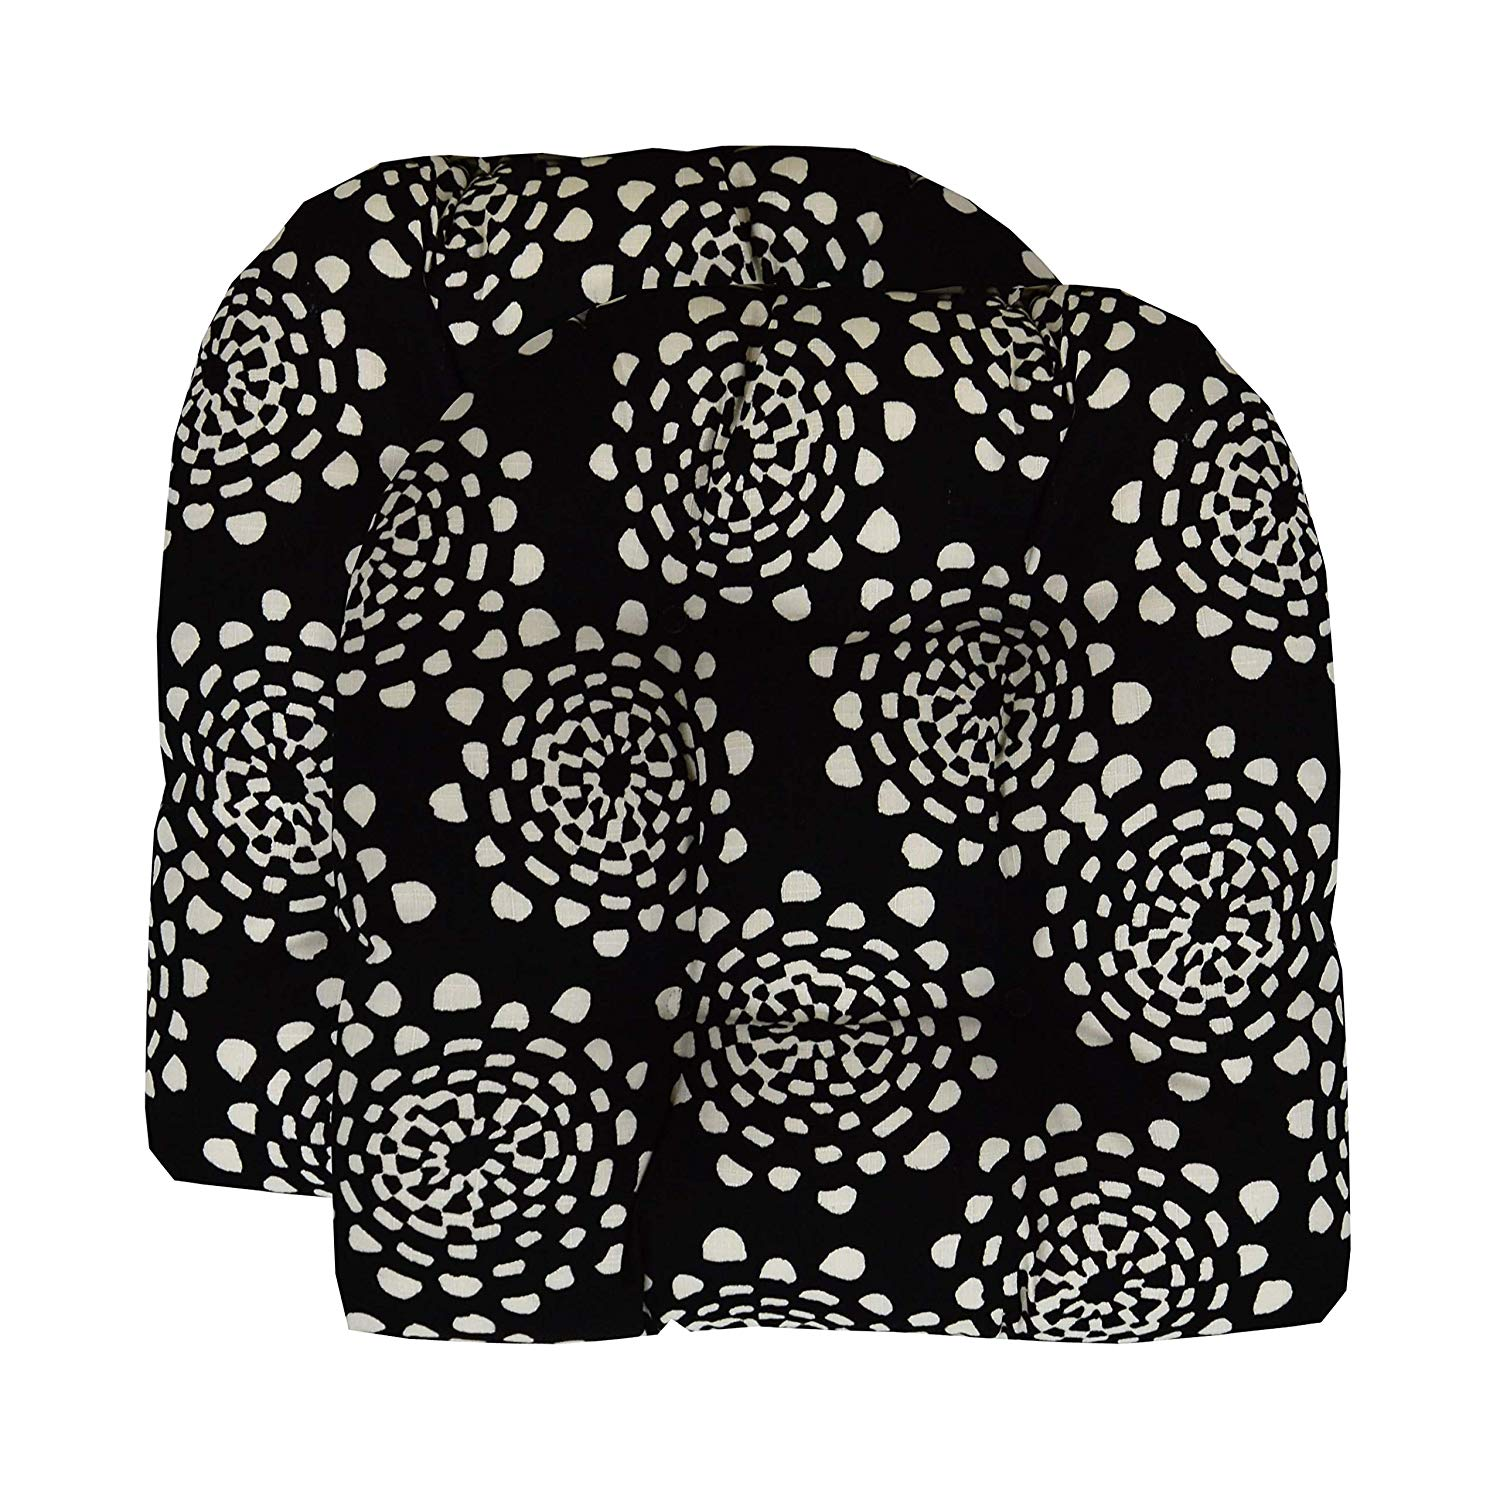 """RSH Décor Indoor Outdoor Wicker- Set of 2 Tufted U - Shape Chair Cushion - Black & White Abstract (19""""W x 19""""D)"""